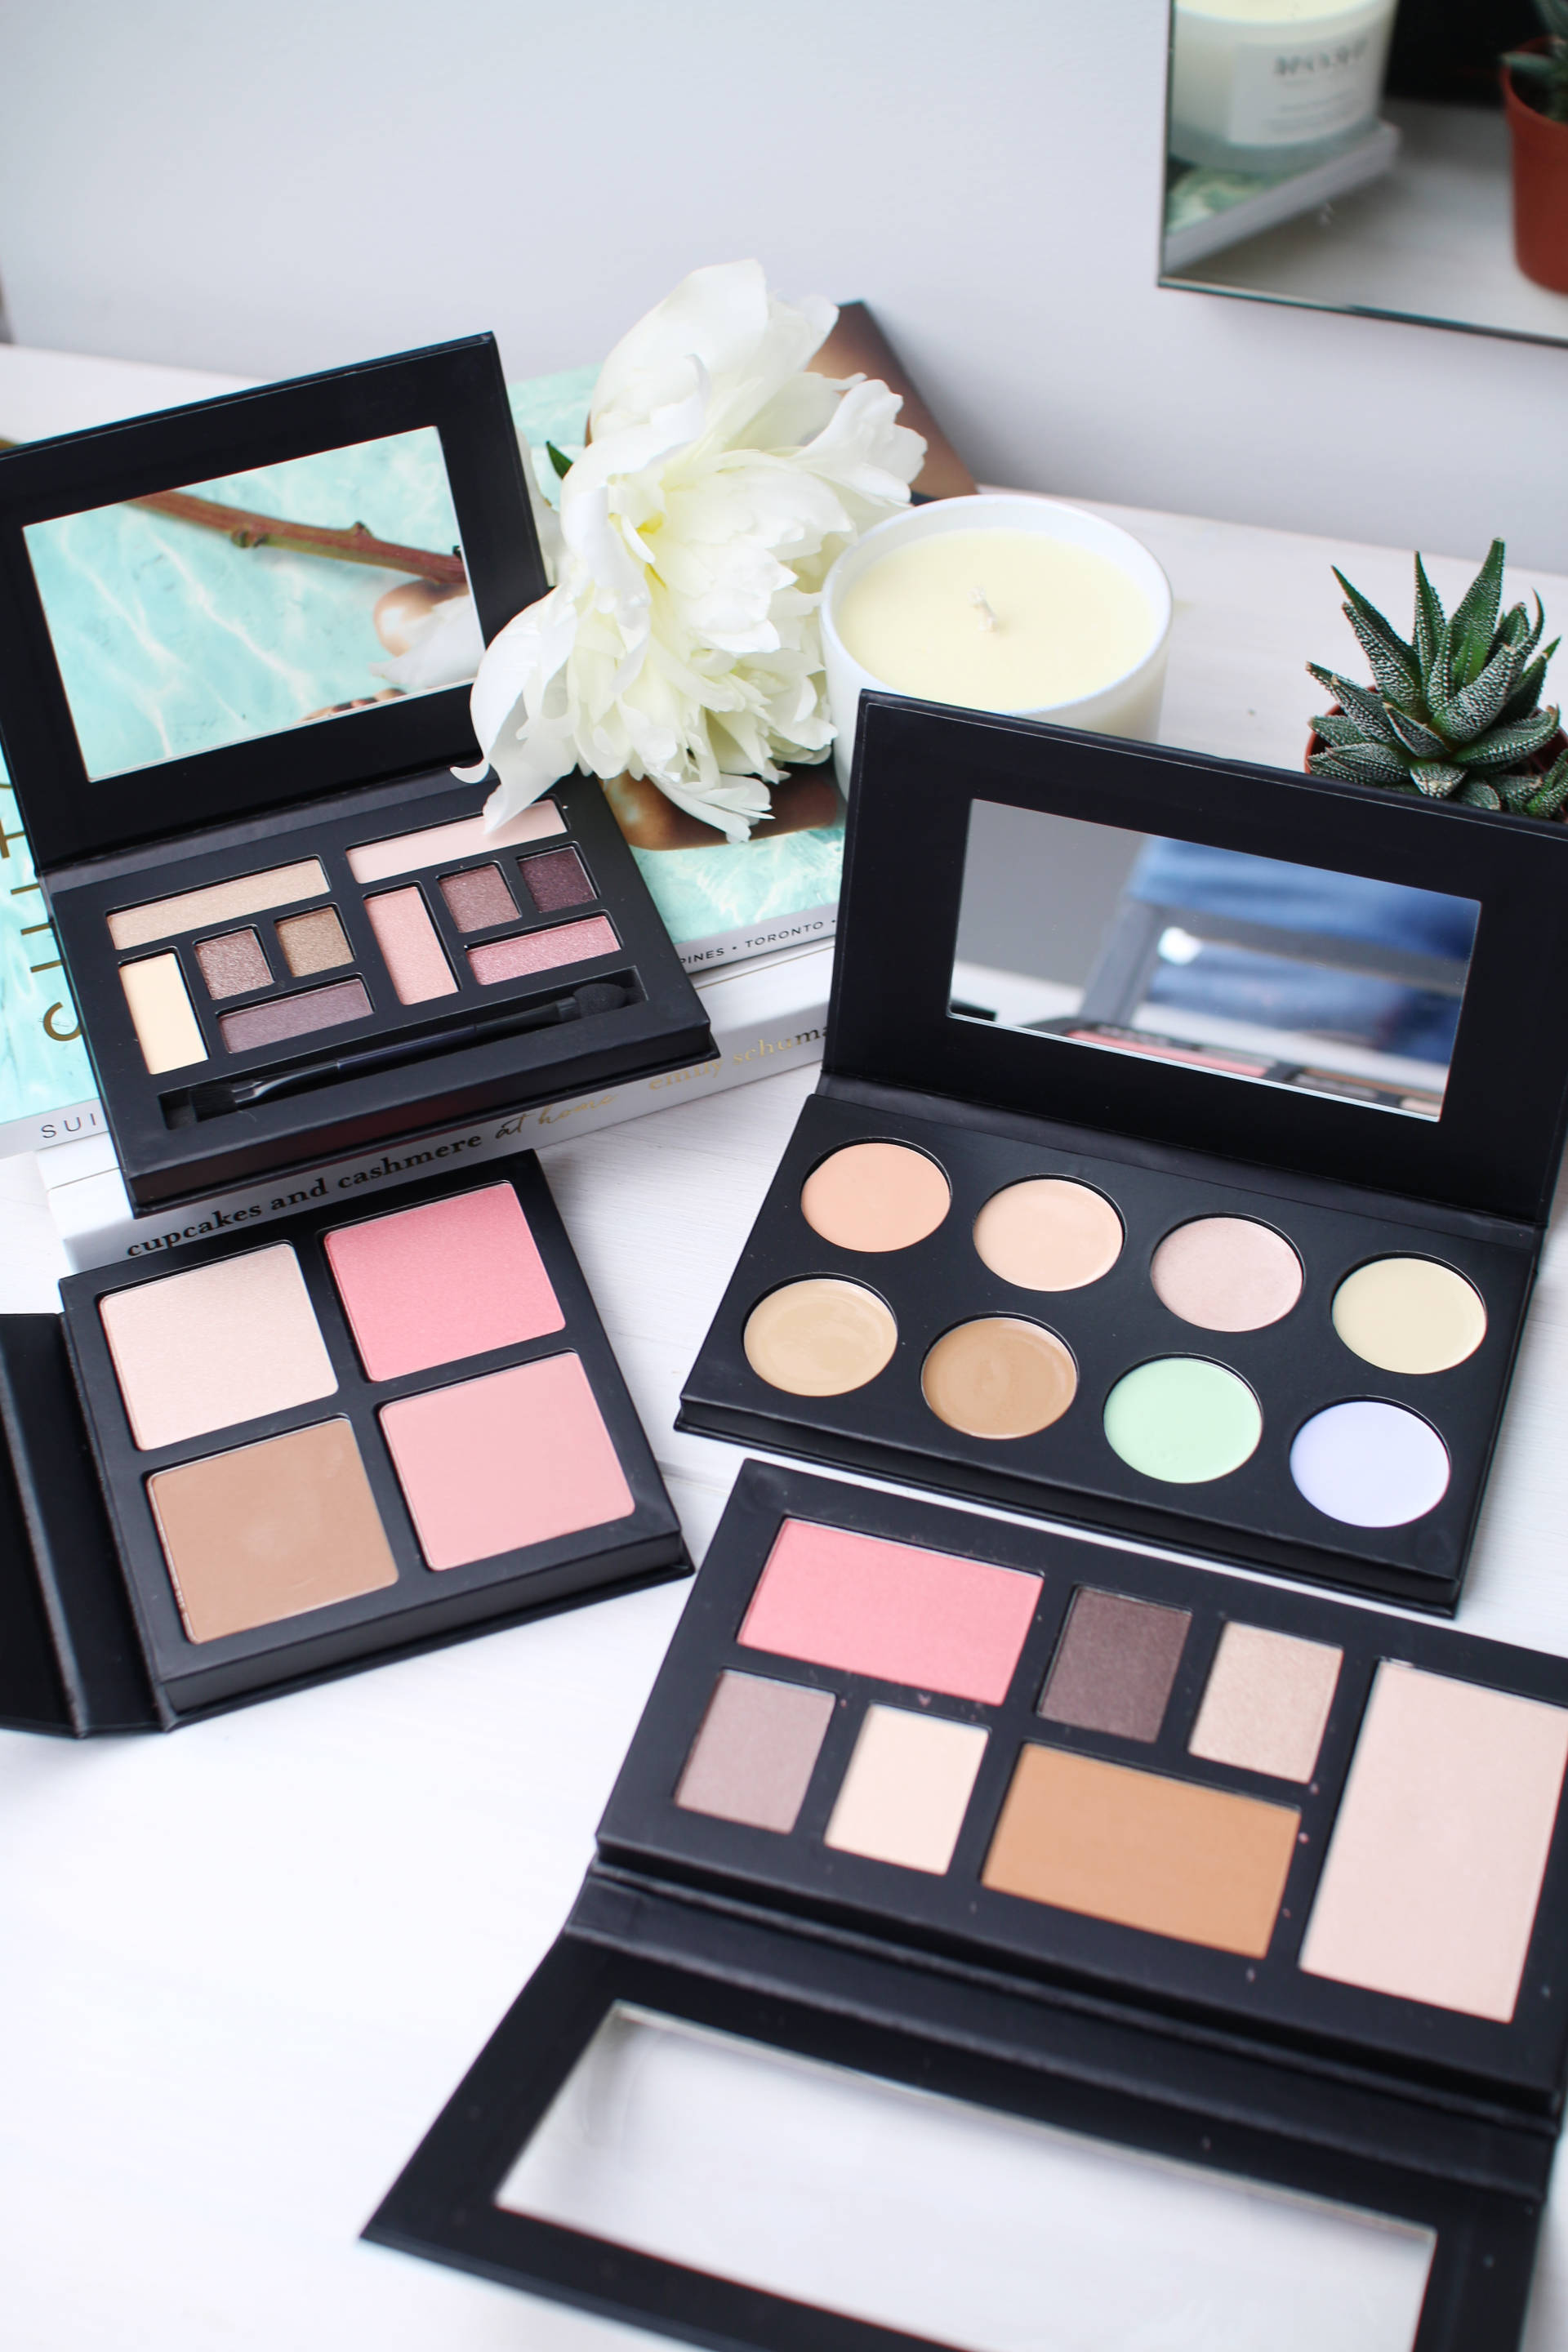 Collection pro palettes